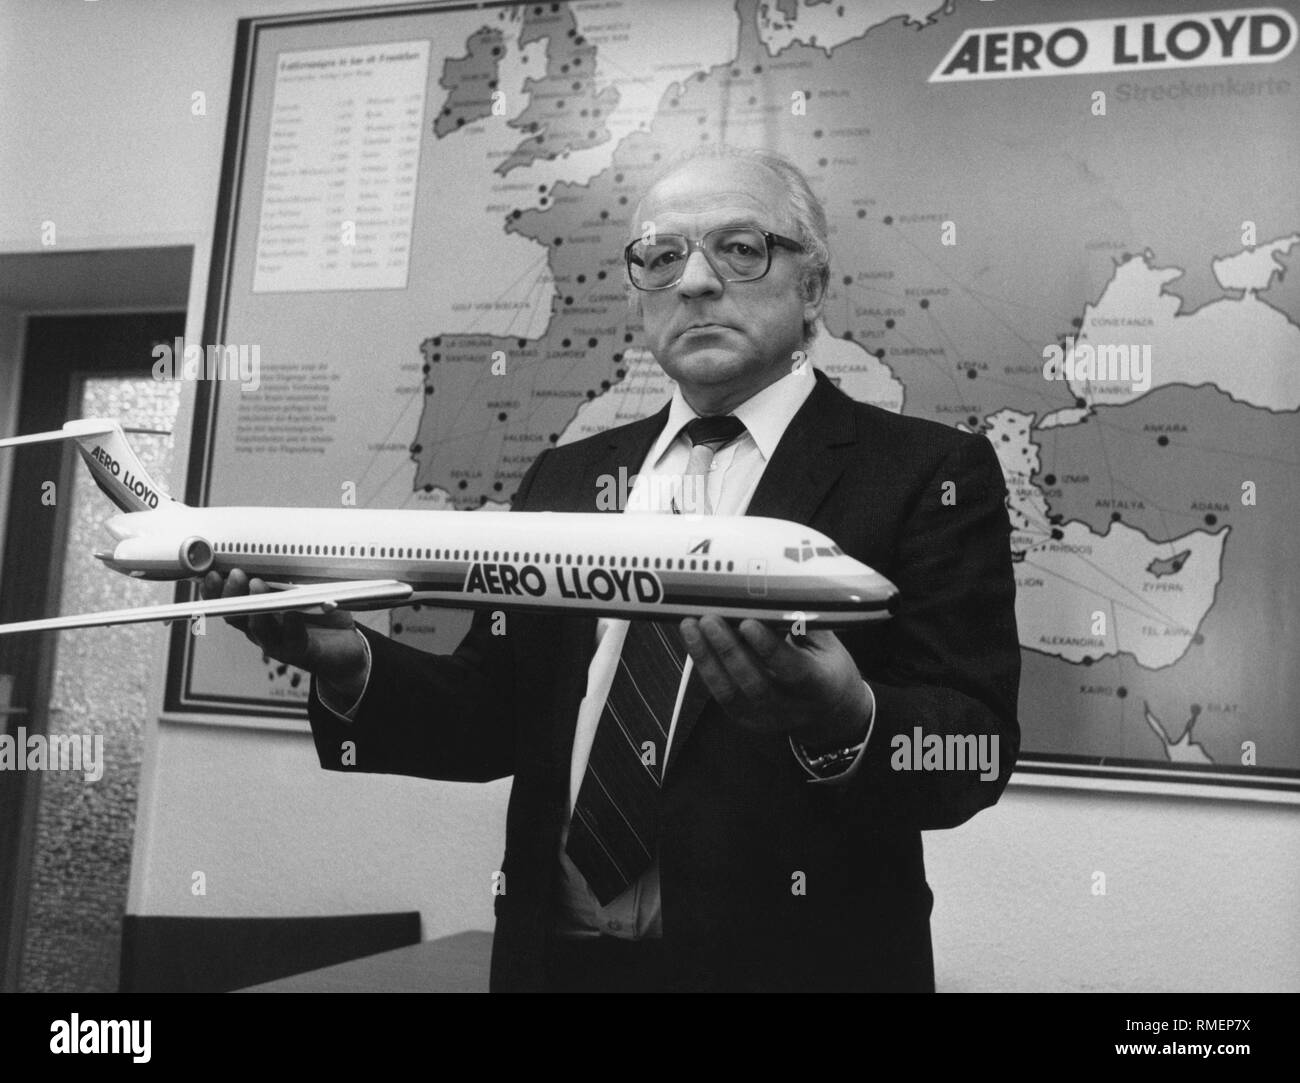 Walter Schneider, managing director of the German airline Aero Lloyd with a model of a McDonnell Douglas MD-83 in front of a route map of his airline. The Aero Lloyd existed from 1980 to 2003, and functioned primarily in the charter business. - Stock Image